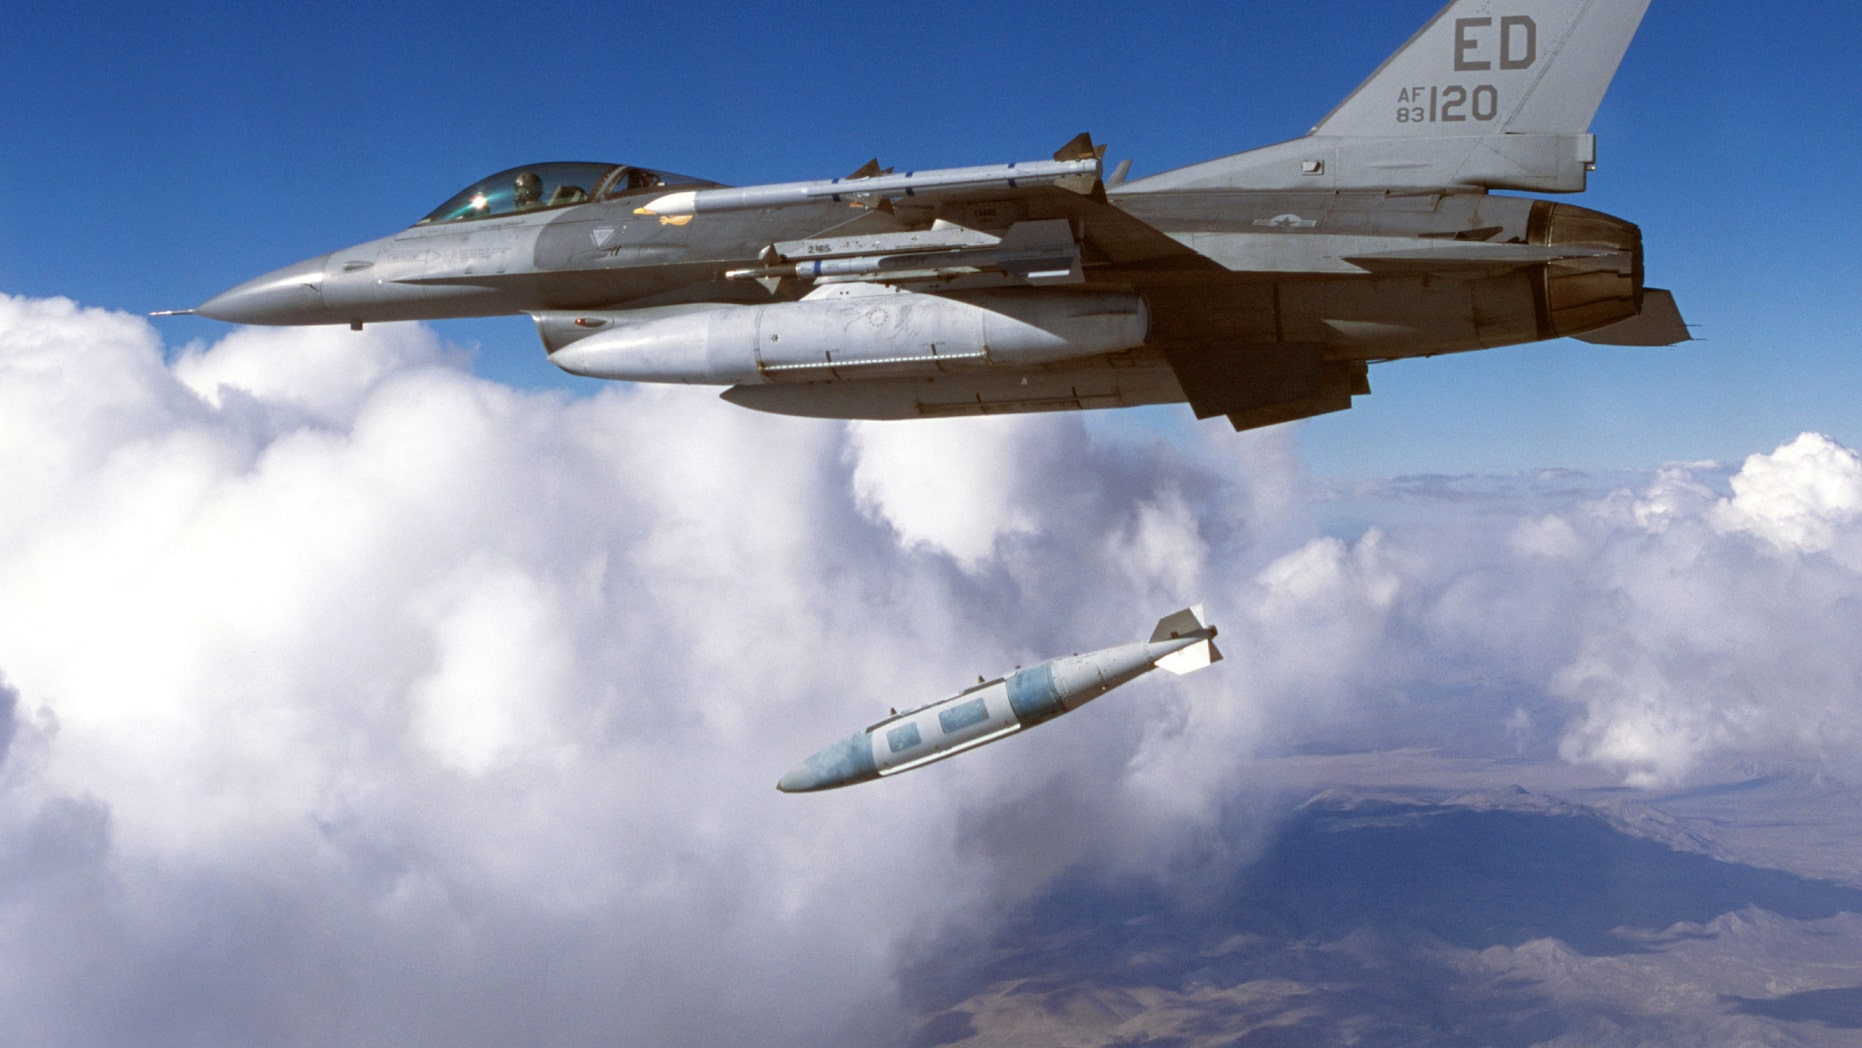 File photo - A Block 30 F-16 from the 416th Flight Test Squadron drops a Joint Direct Attack Munition (JDAM) during testing in January, 2003 at Edwards Air Force Base in California. (Photo by Tom Reynolds/U.S. Air Force/Getty Images)